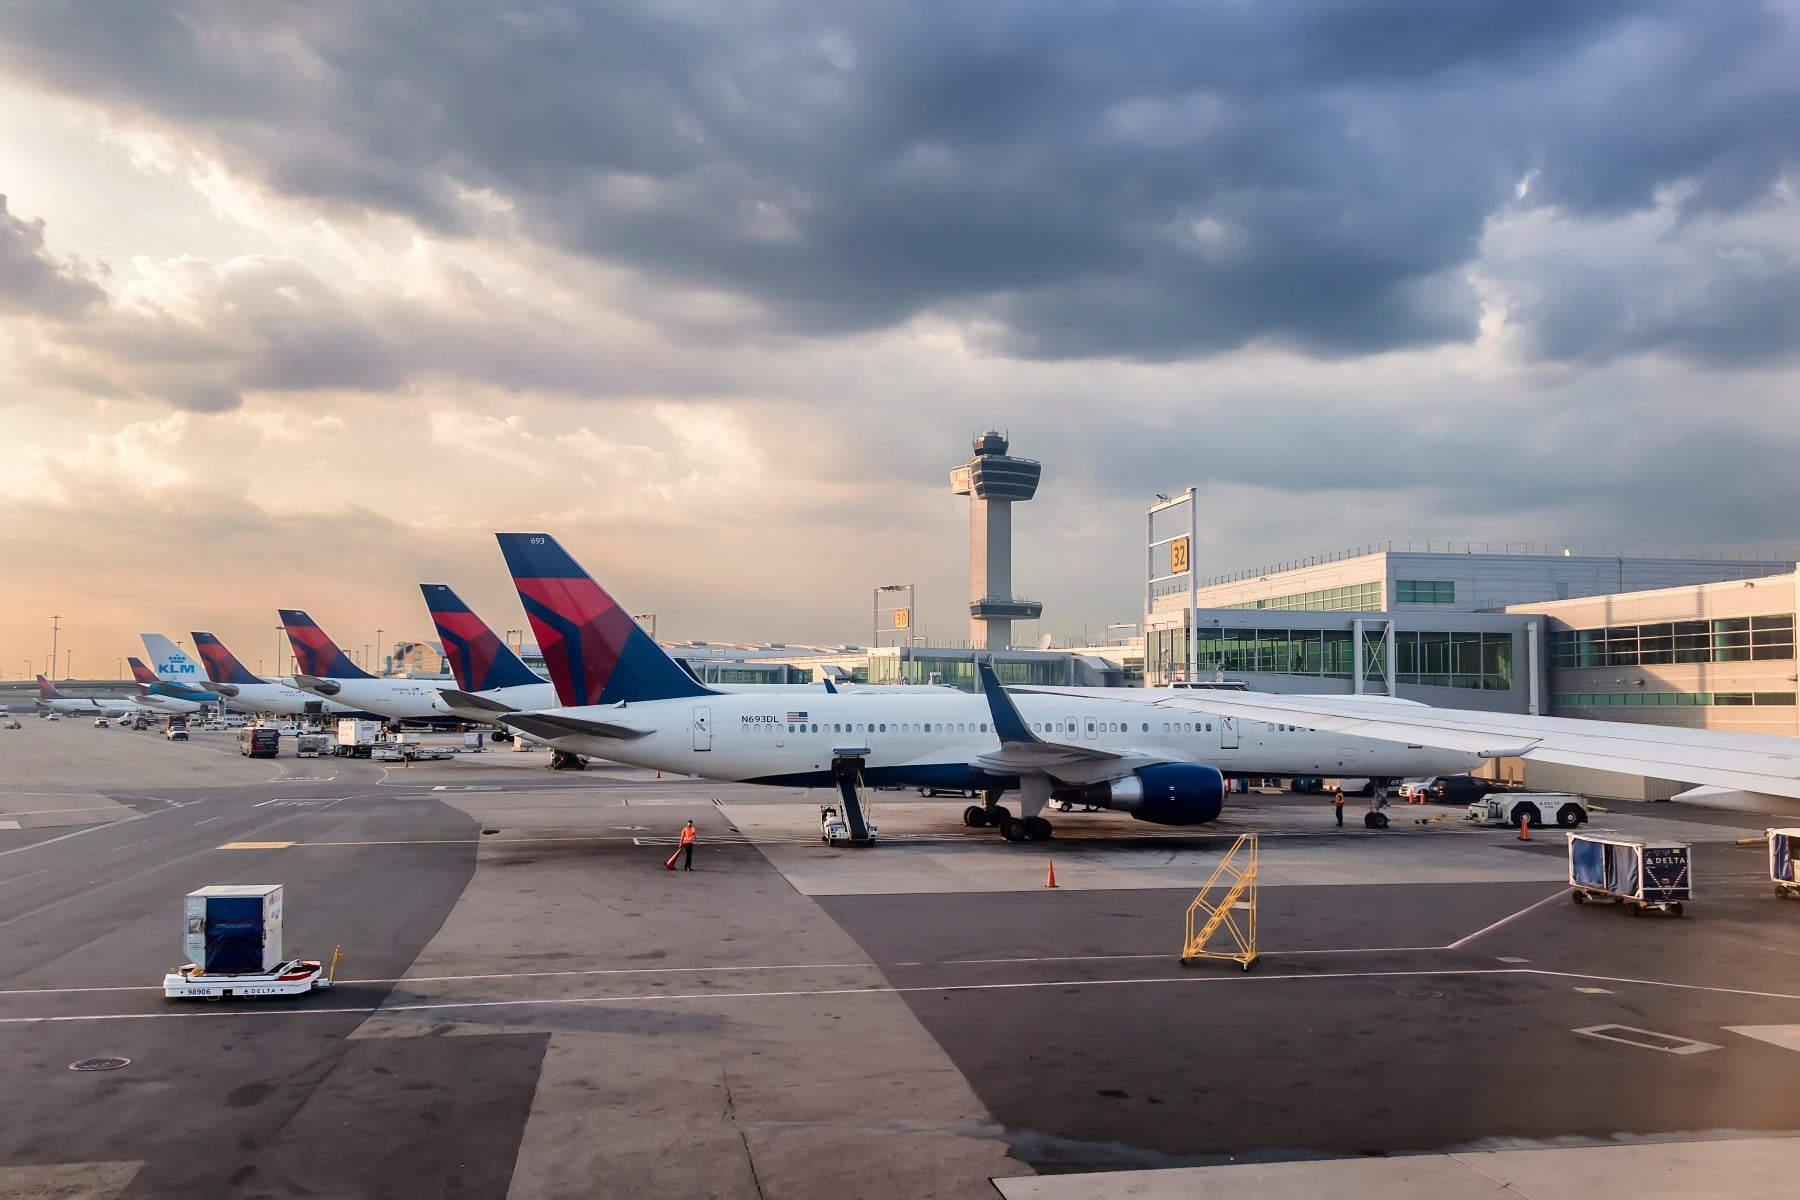 Is the Gold Delta SkyMiles Business Card Annual Fee Worth It? With Money-Saving Travel Perks and a Whopper Welcome Bonus, It's a Great Fit for Delta Flyers